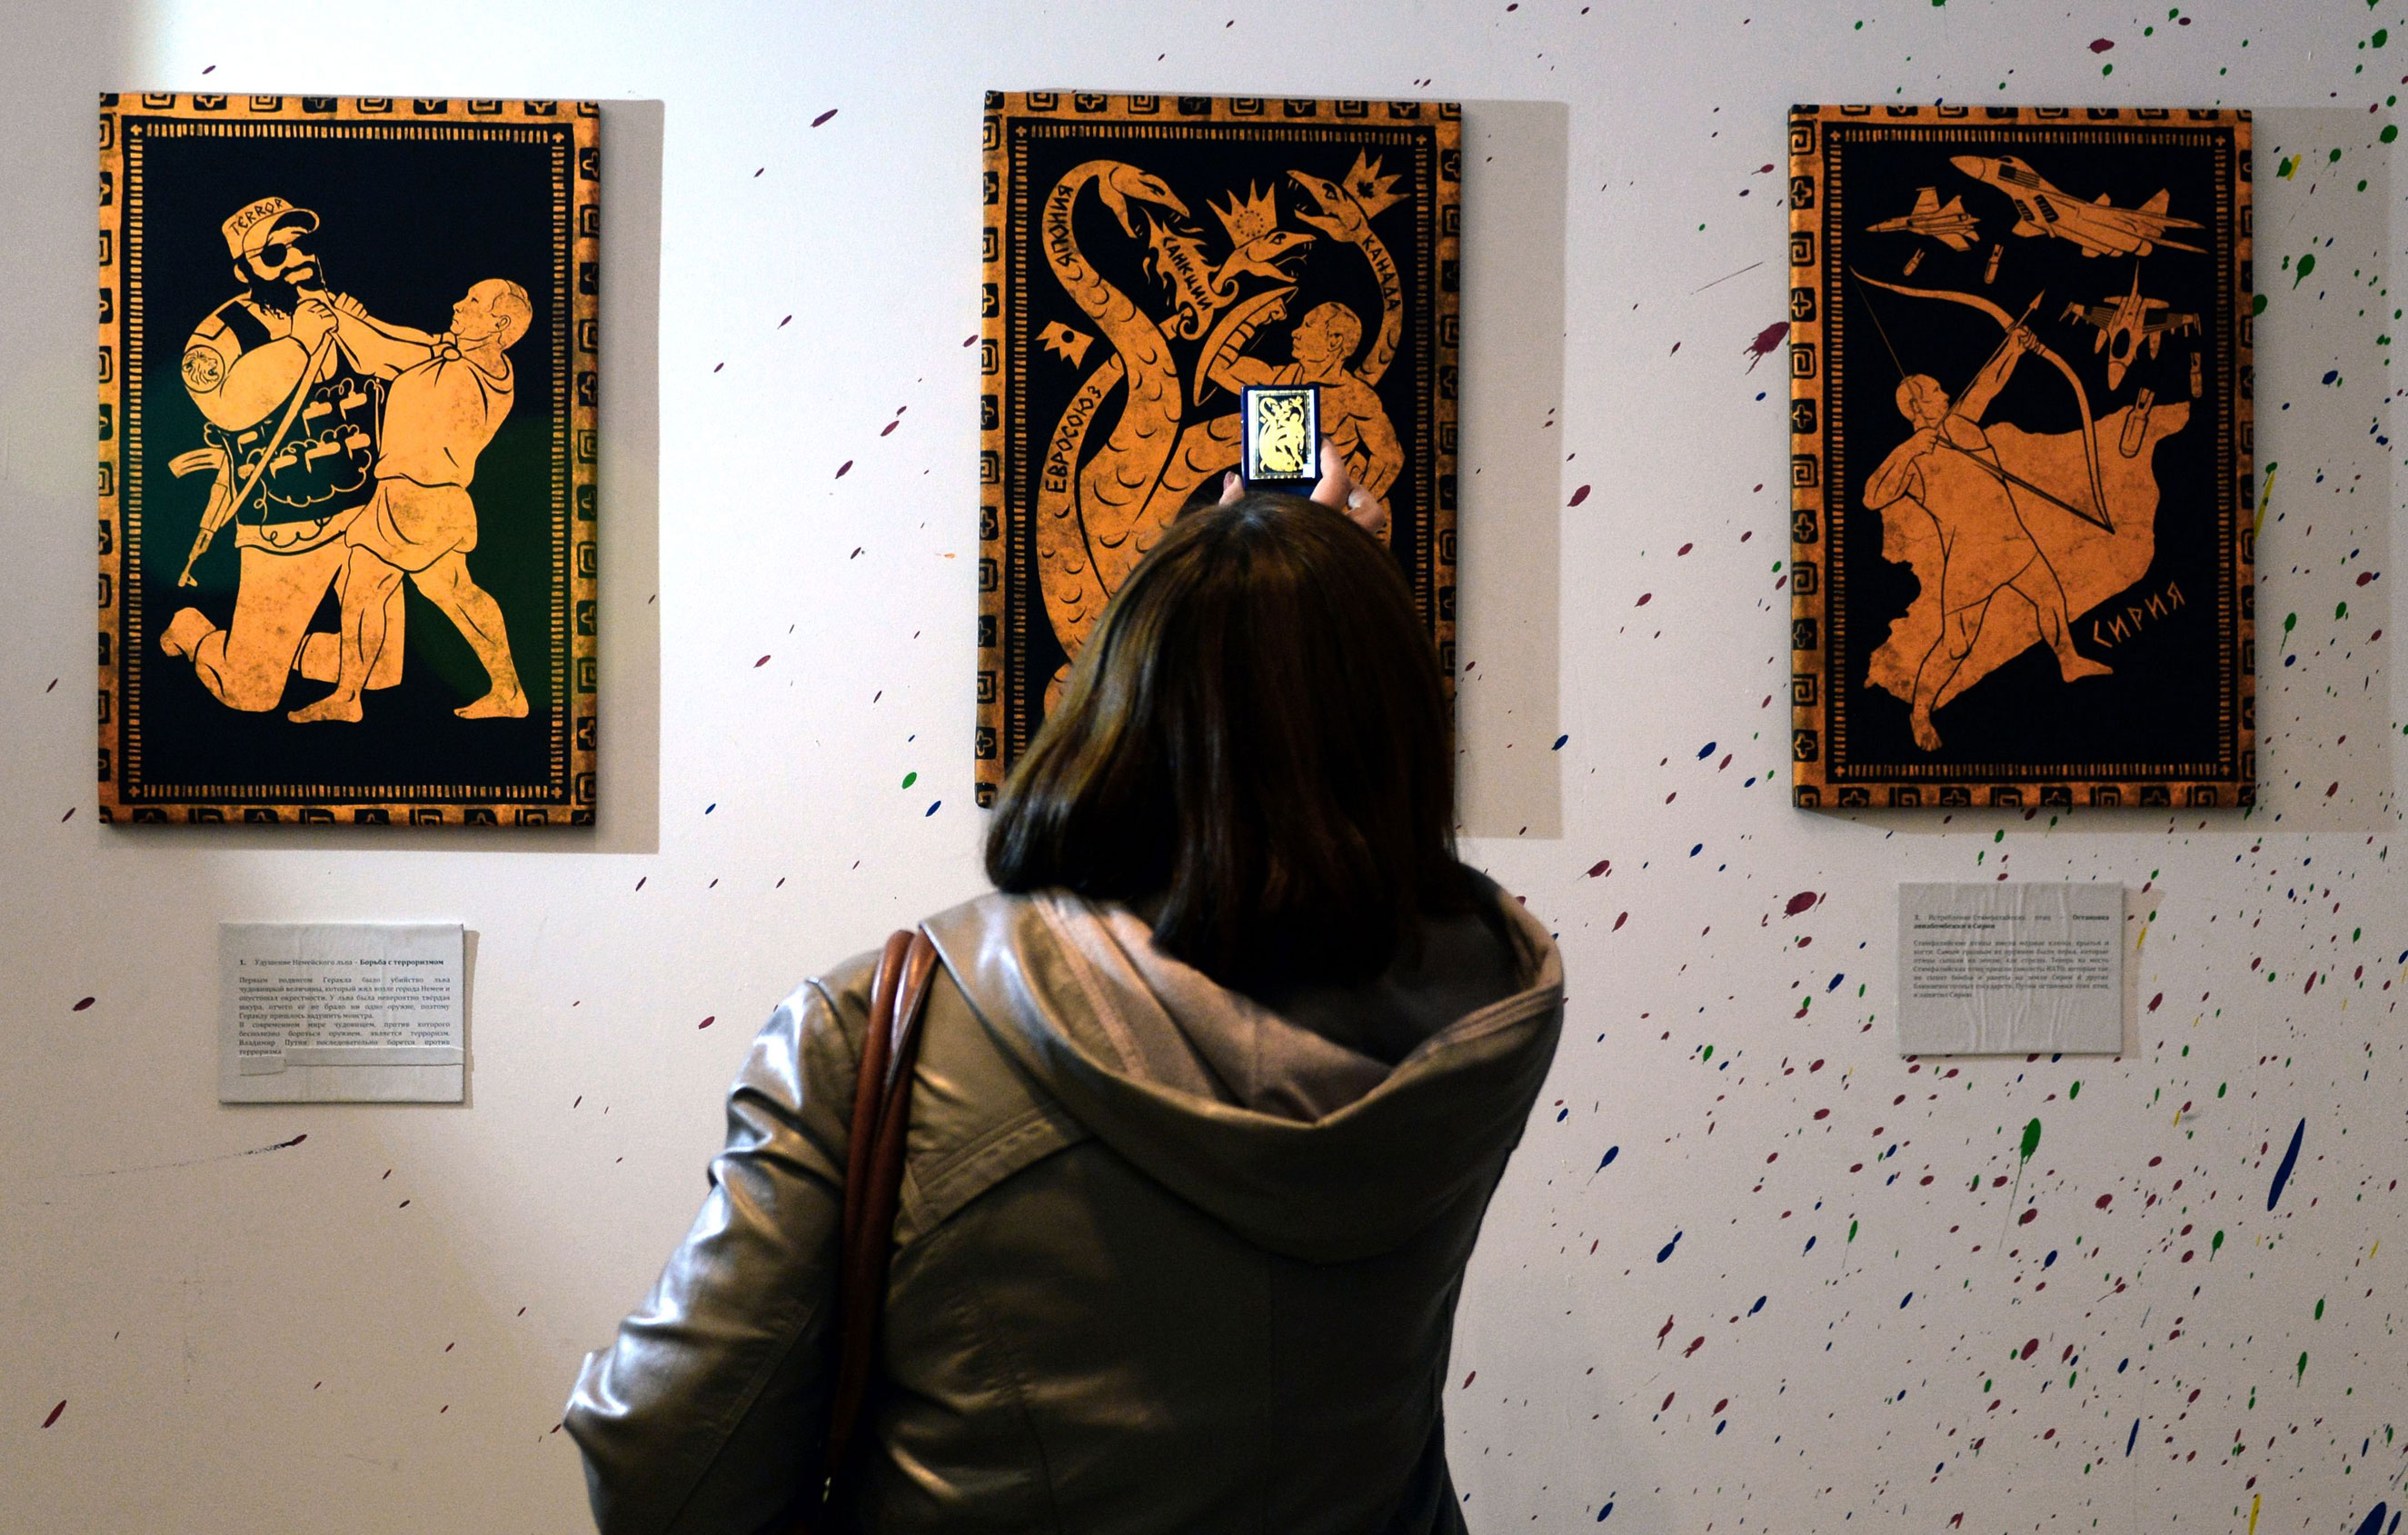 A visitor takes photos of the paintings during the  12 Labours of Putin  art exhibition on Oct. 6, 2014 marking the 60th birthday of Russia's President Vladimir Putin at the design workshop in Moscow.